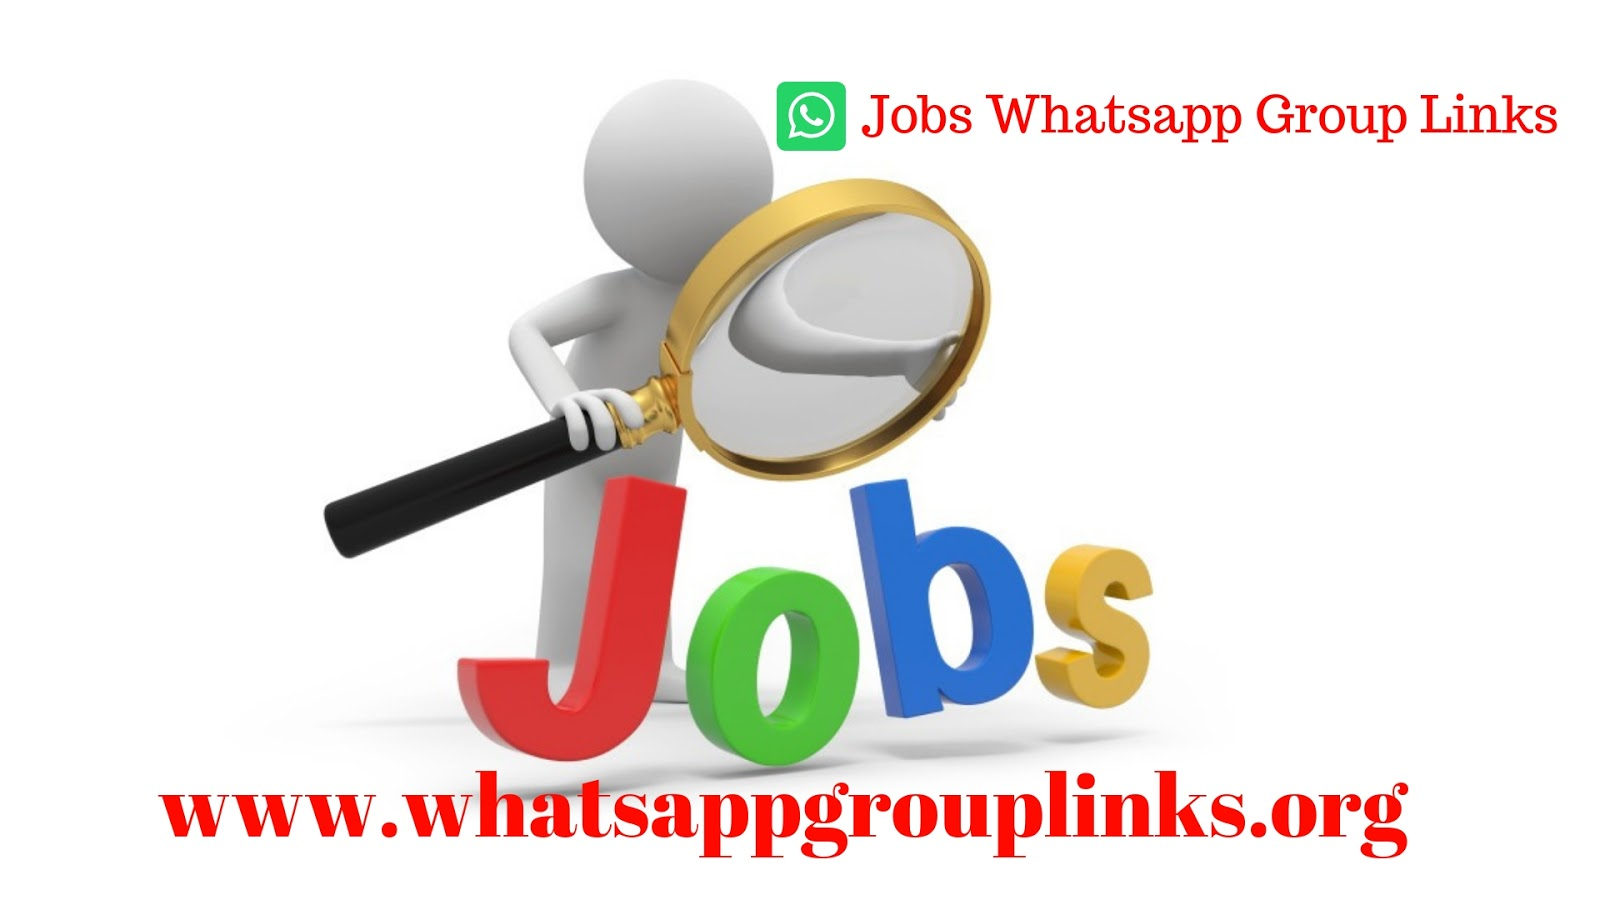 JOIN 1000+ JOB WHATSAPP GROUP LINKS LIST - Whatsapp Group Links